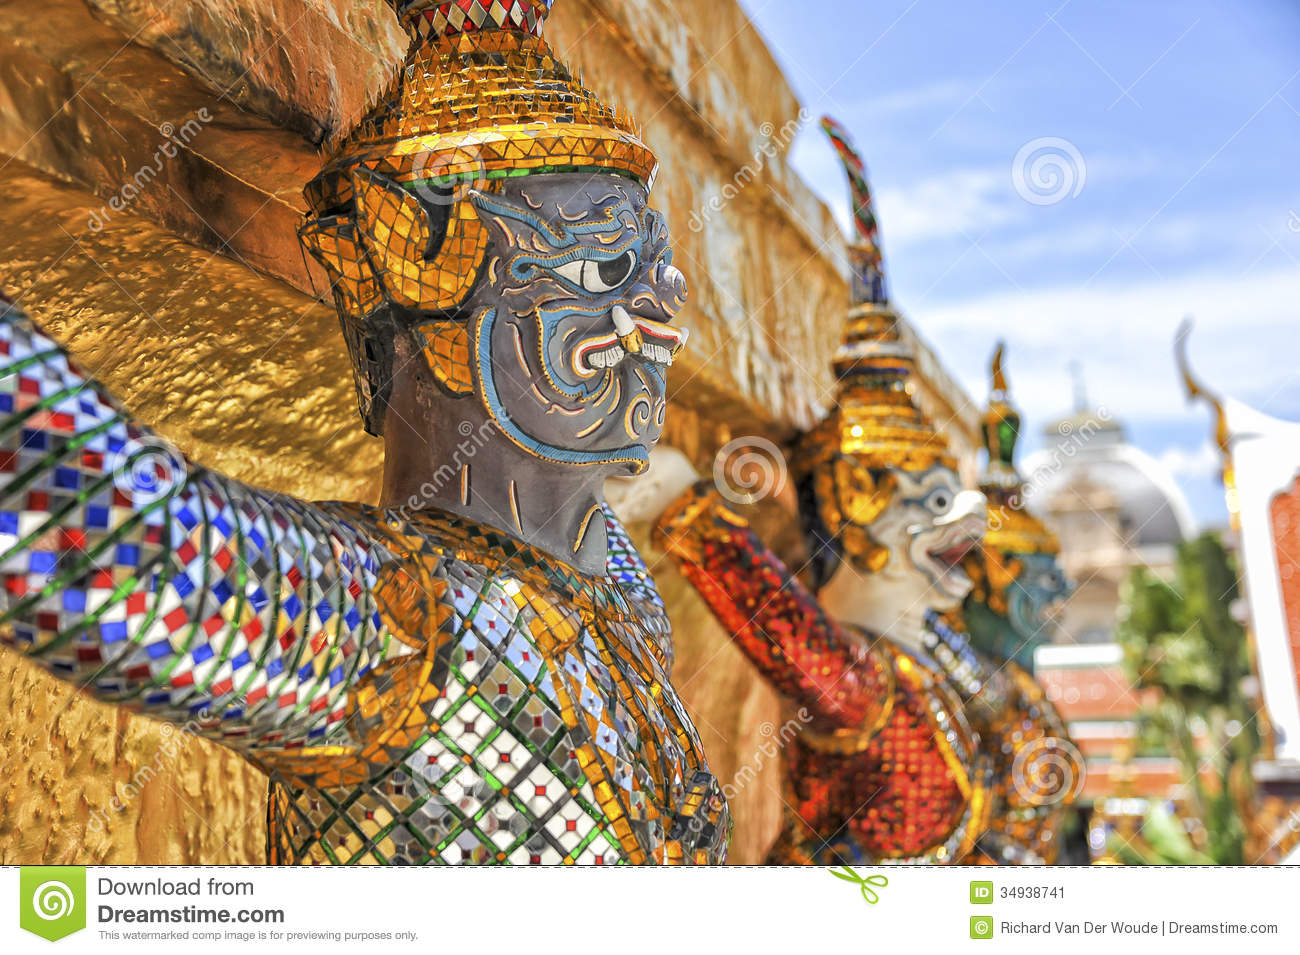 Demon guard of Wat Phra Kaew Grand Palace Bangkok